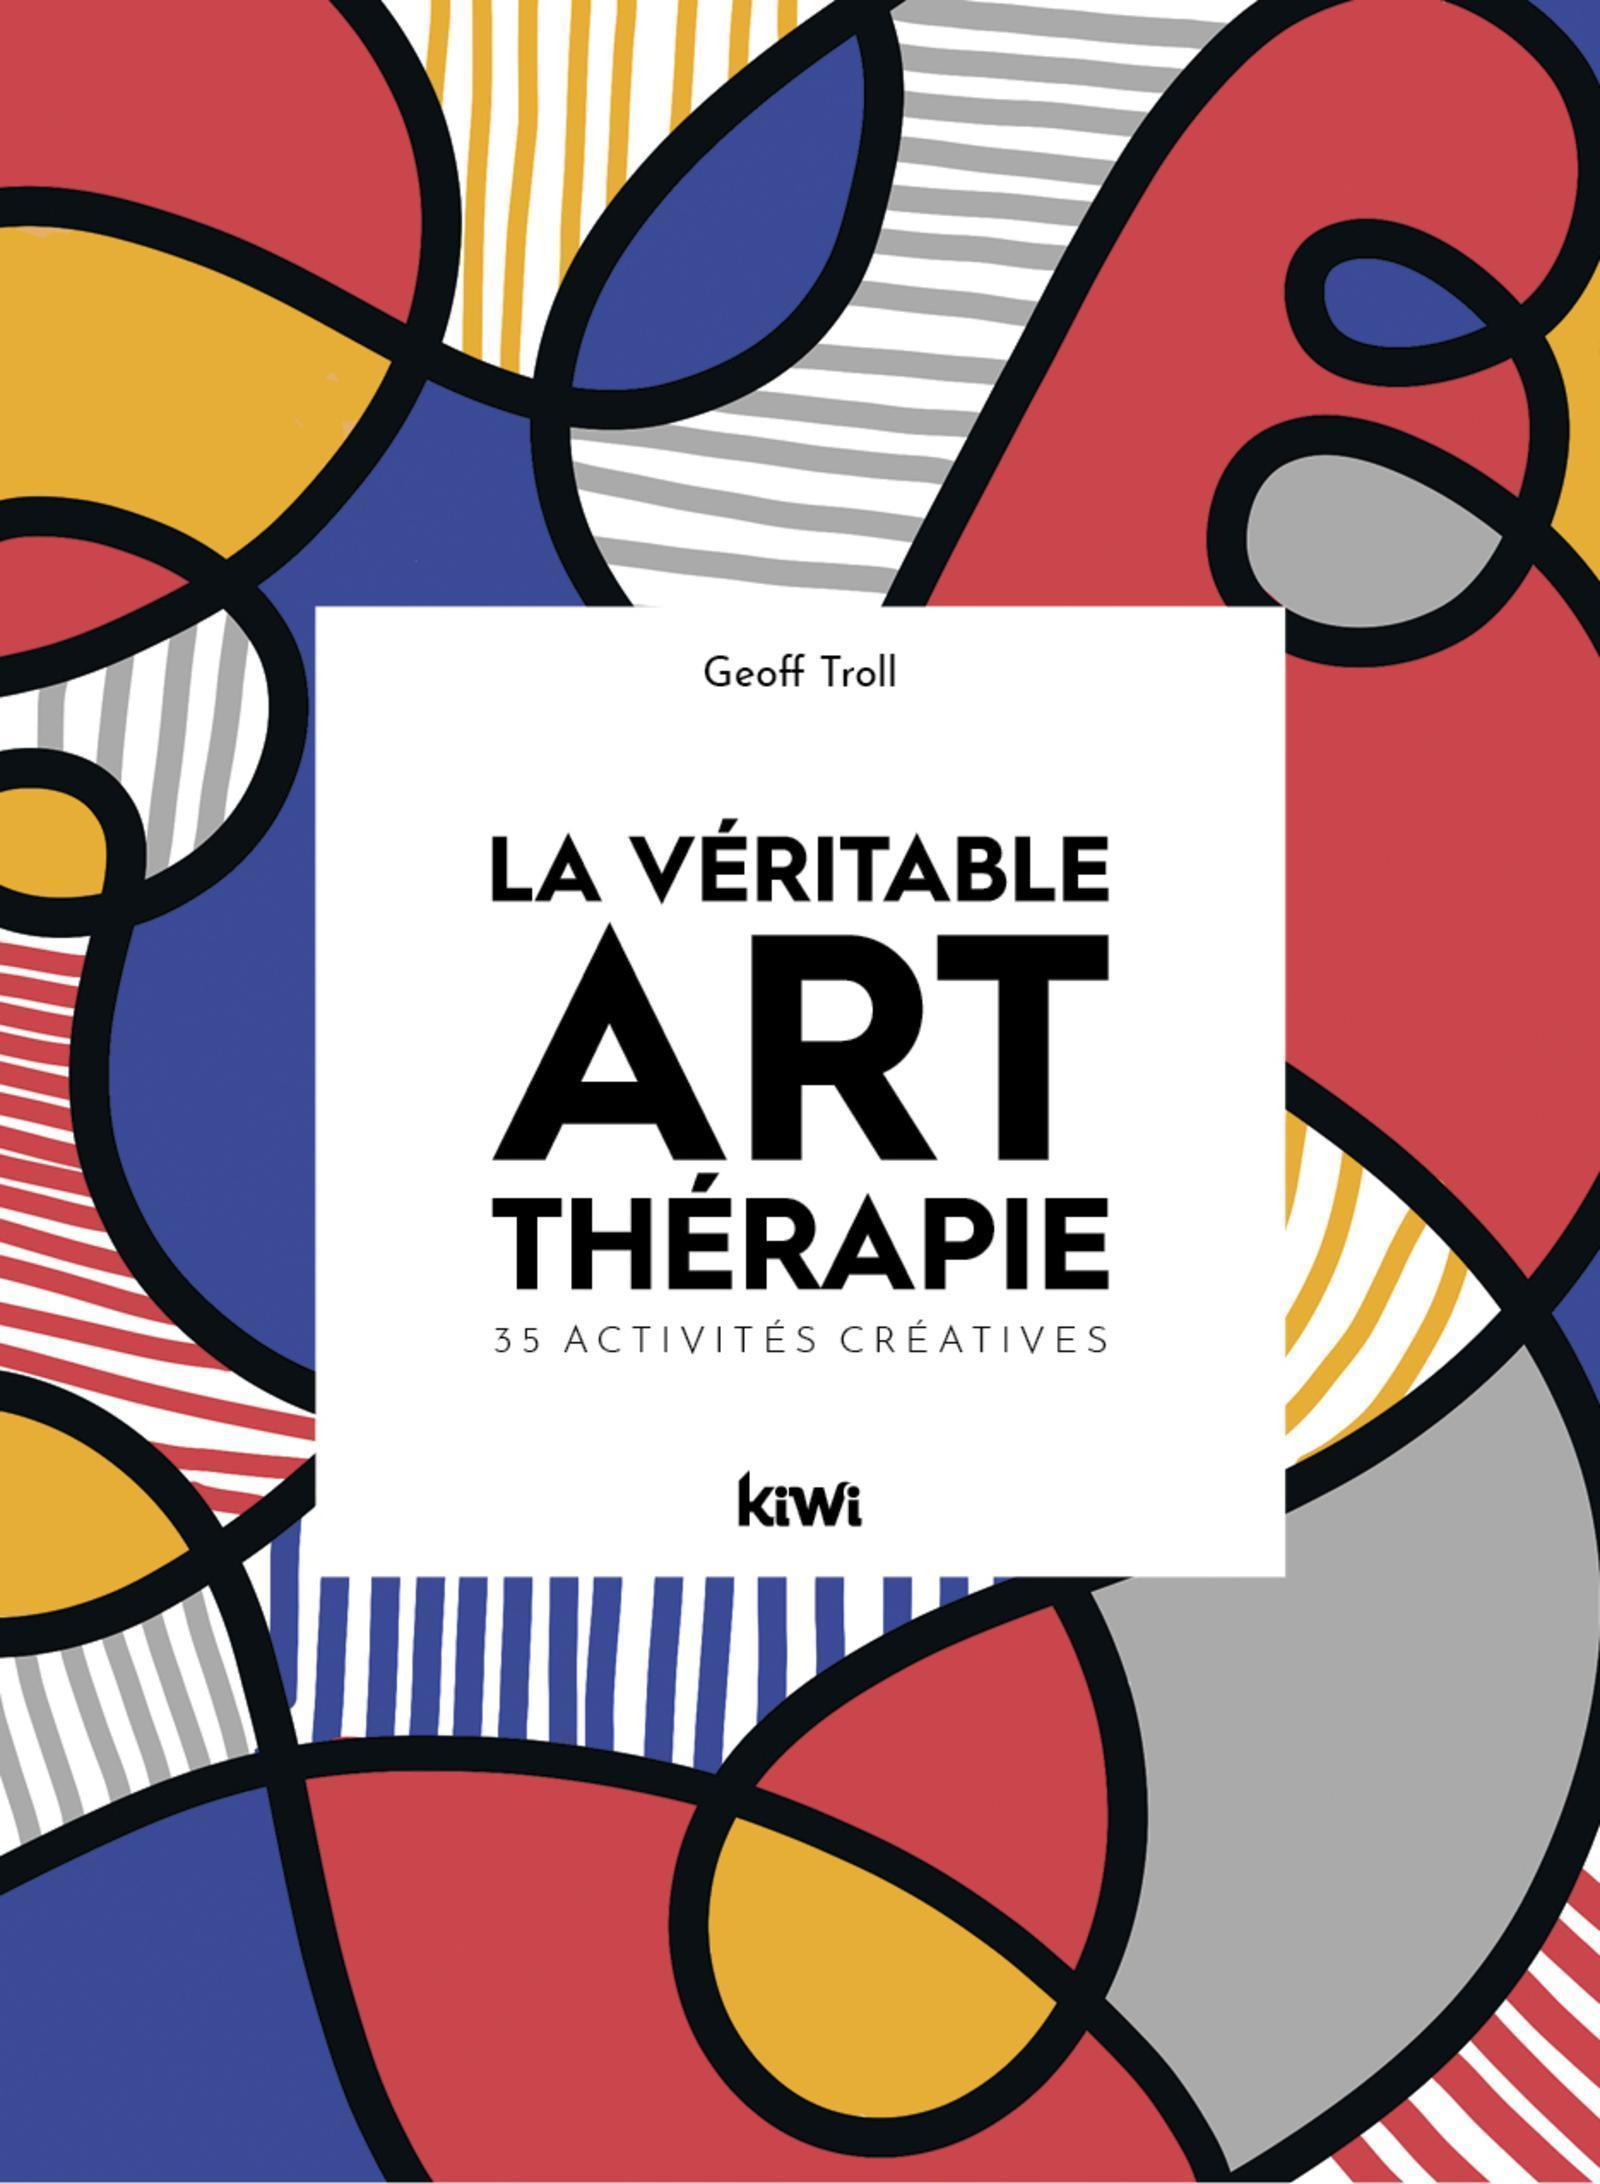 LA VERITABLE ART THERAPIE